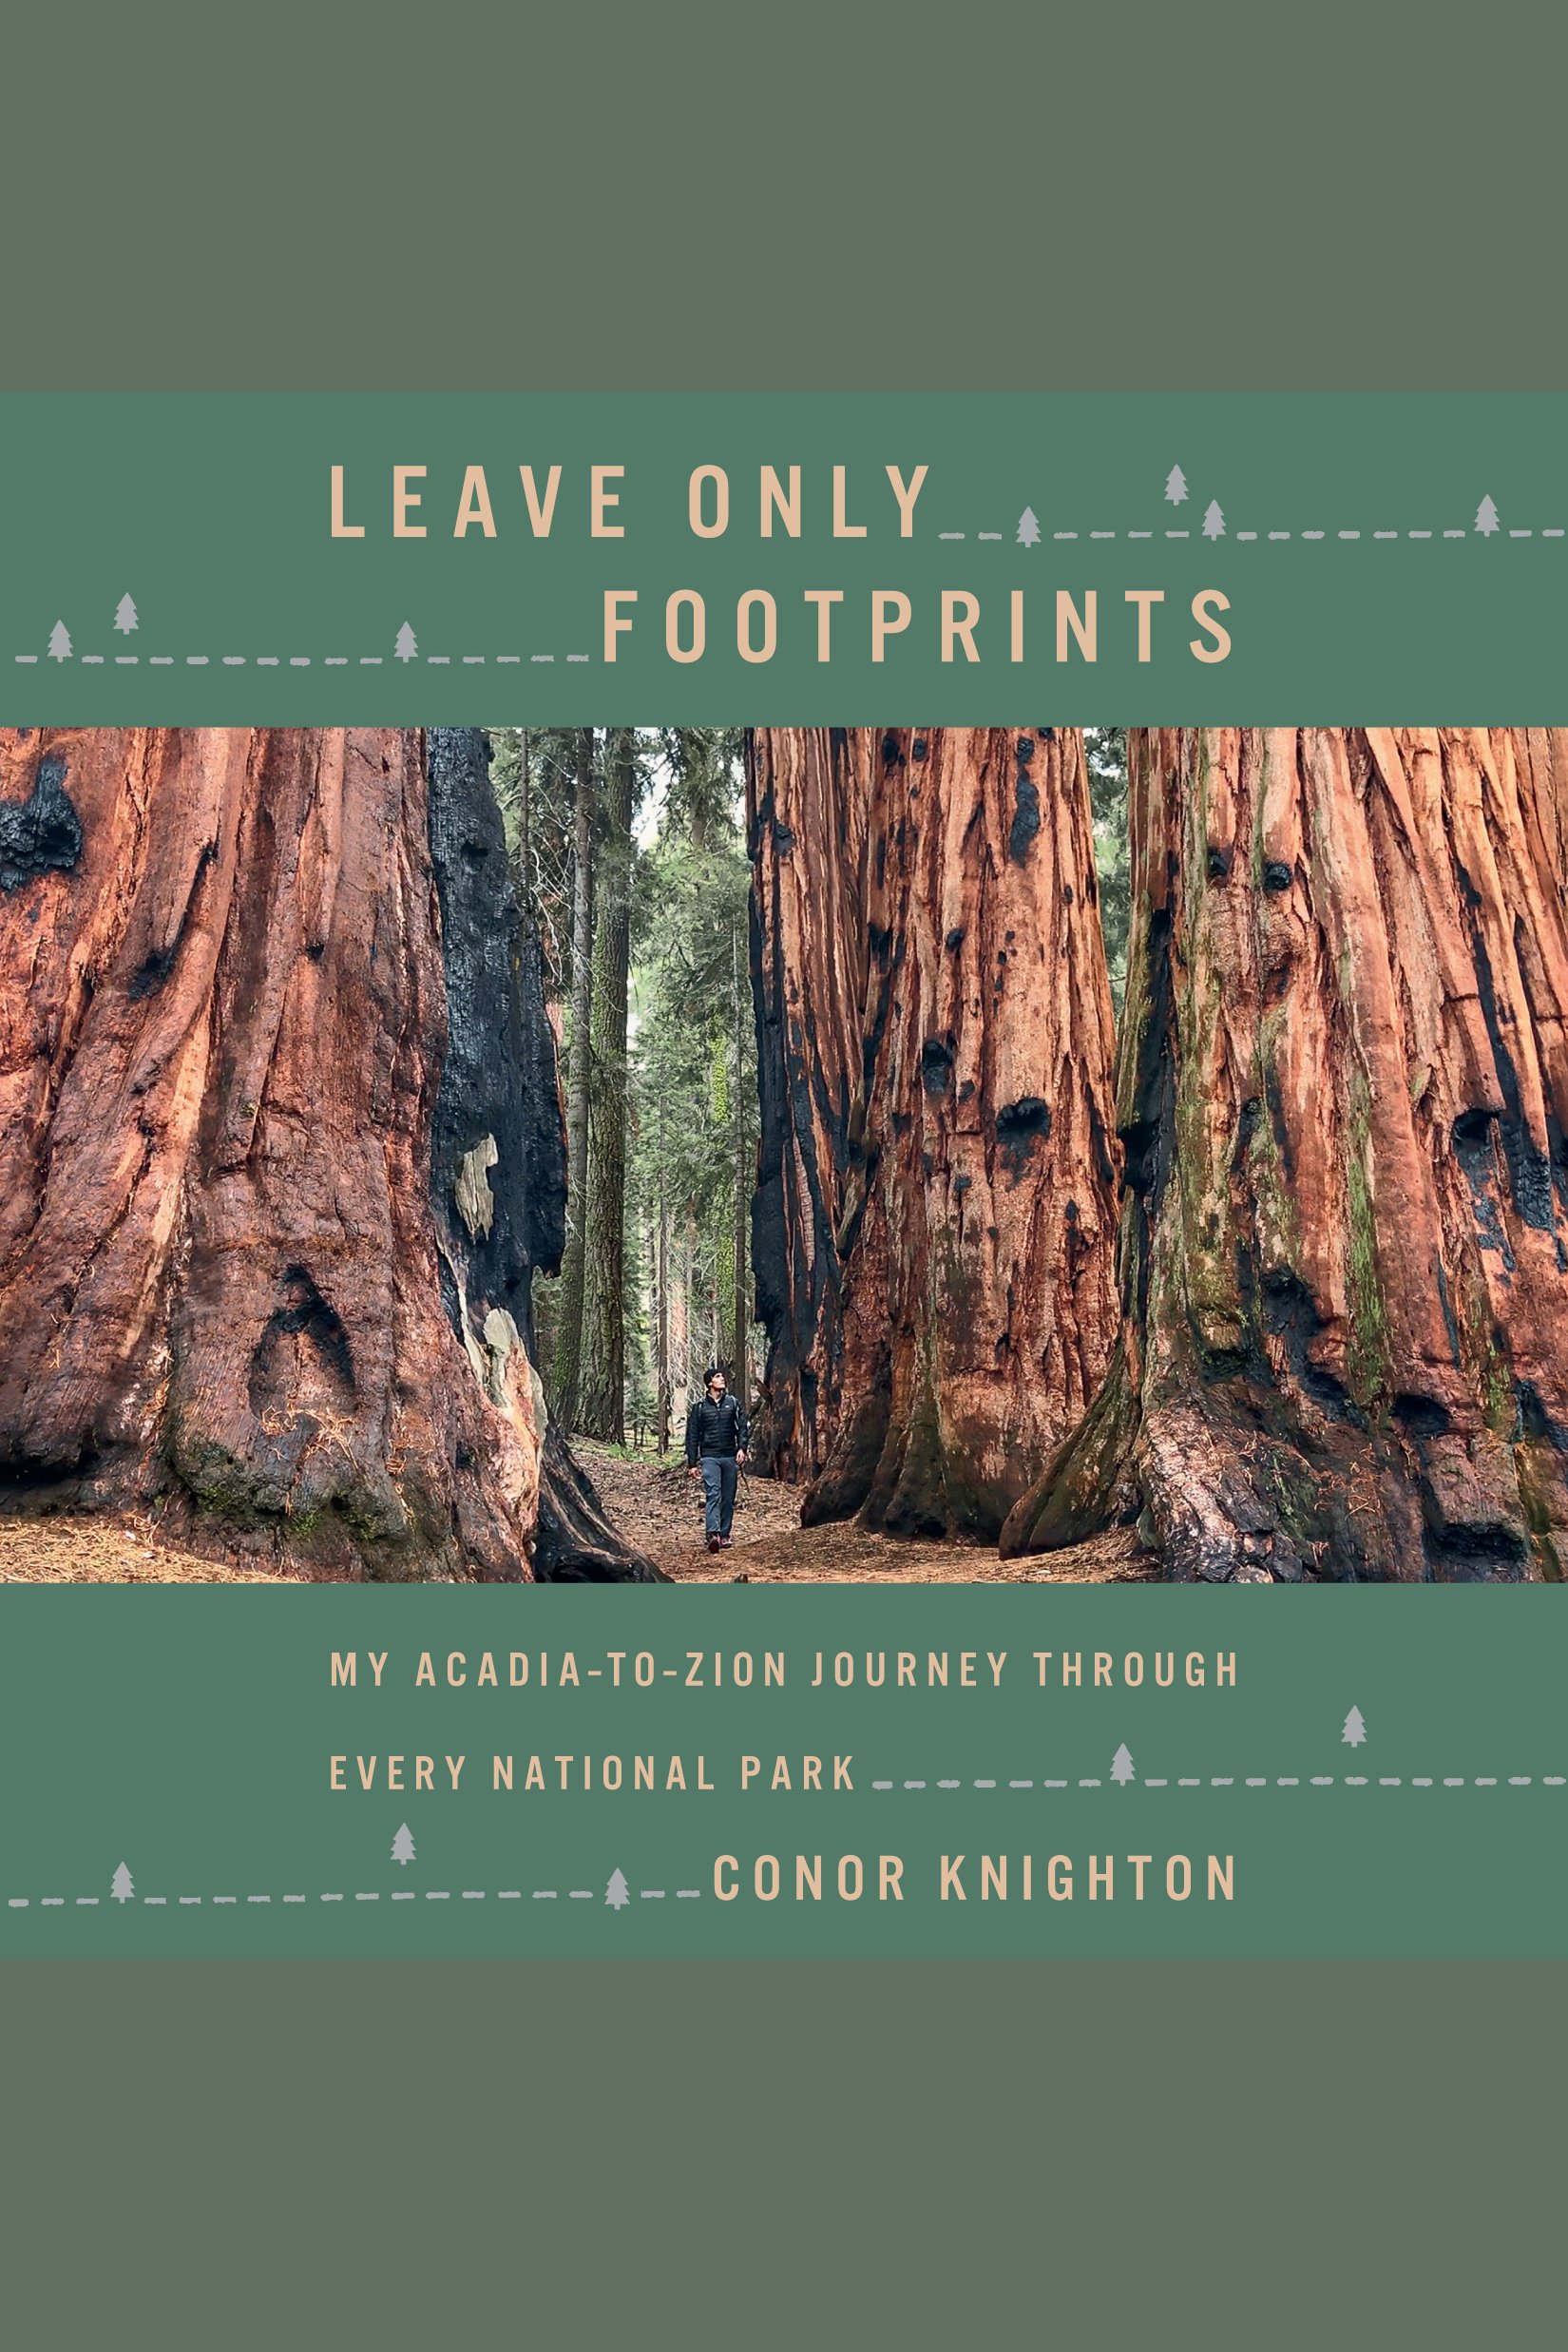 Leave Only Footprints [electronic resource] : My Acadia-To-Zion Journey Through Every National Park